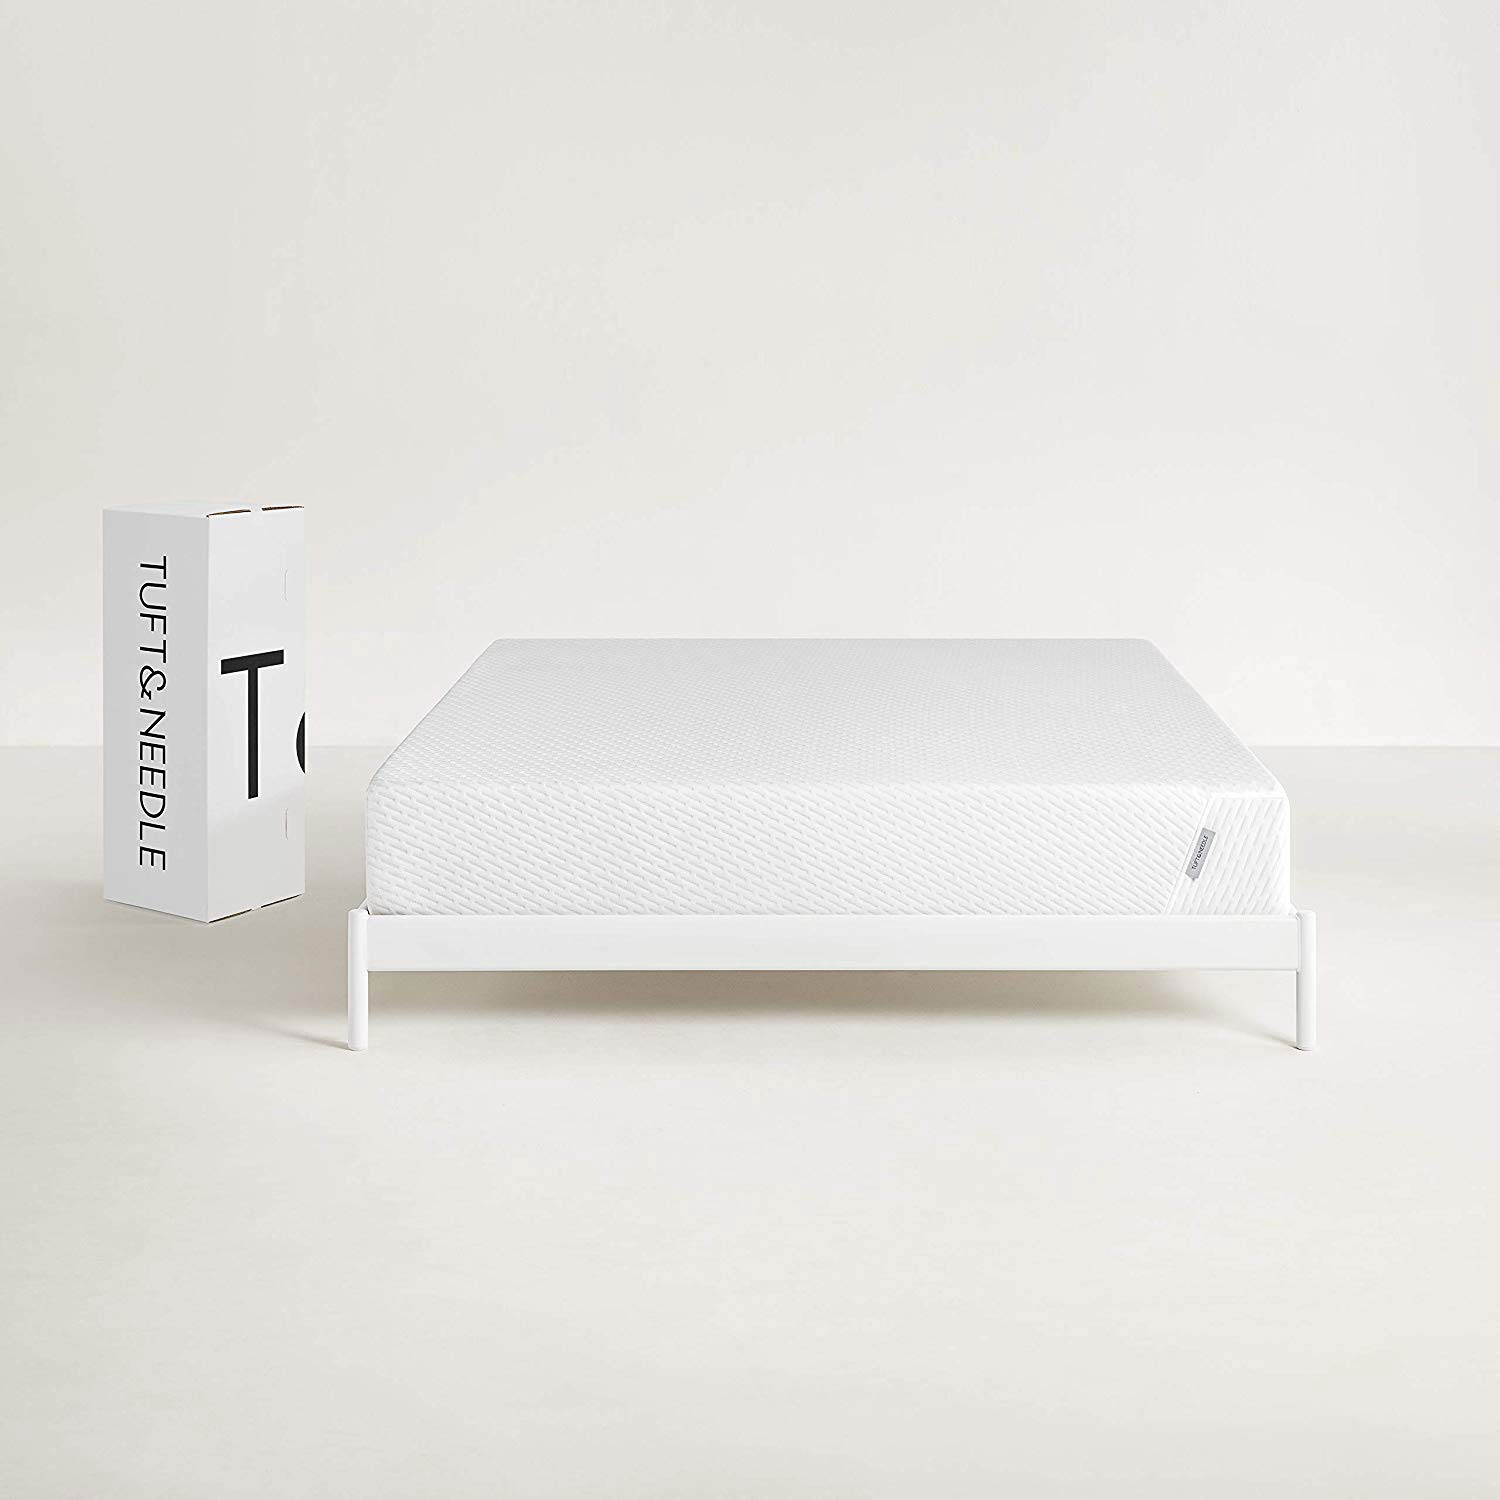 Tuft & Needle Queen Bed in a Box Mattress